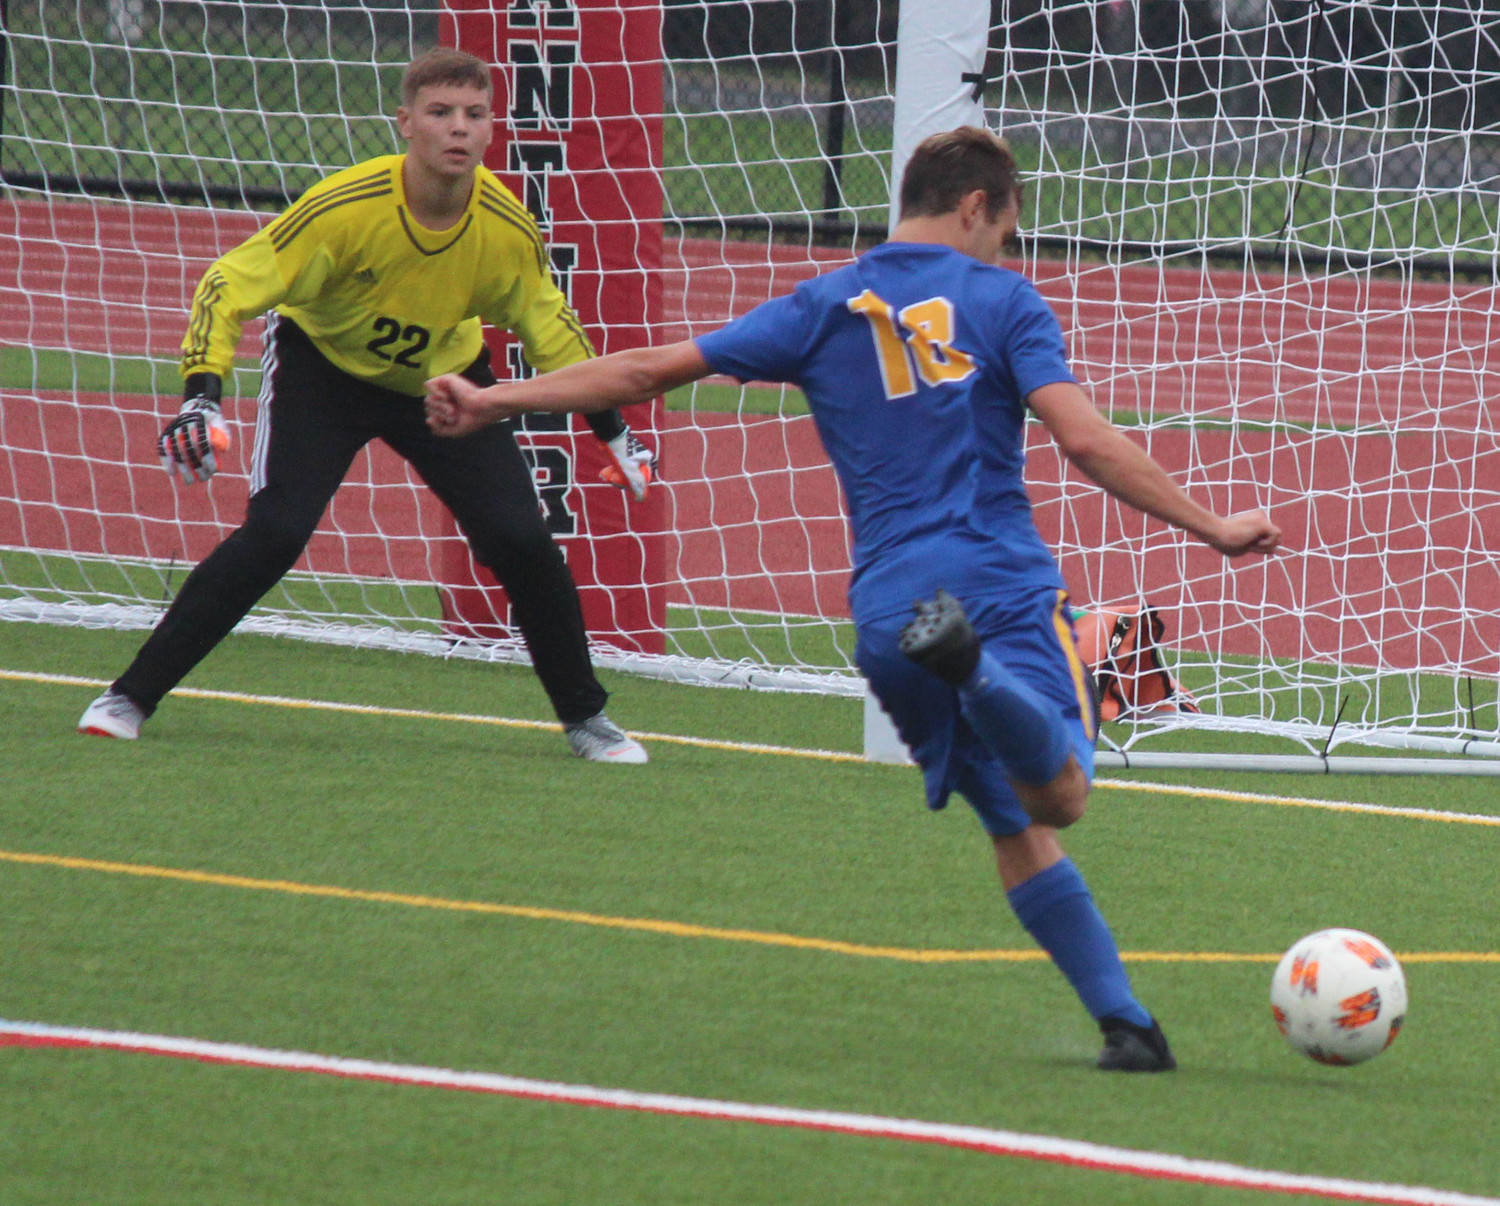 Anthony Lavia takes a shot Sept. 1 vs. the Schuylkill Valley Panthers.